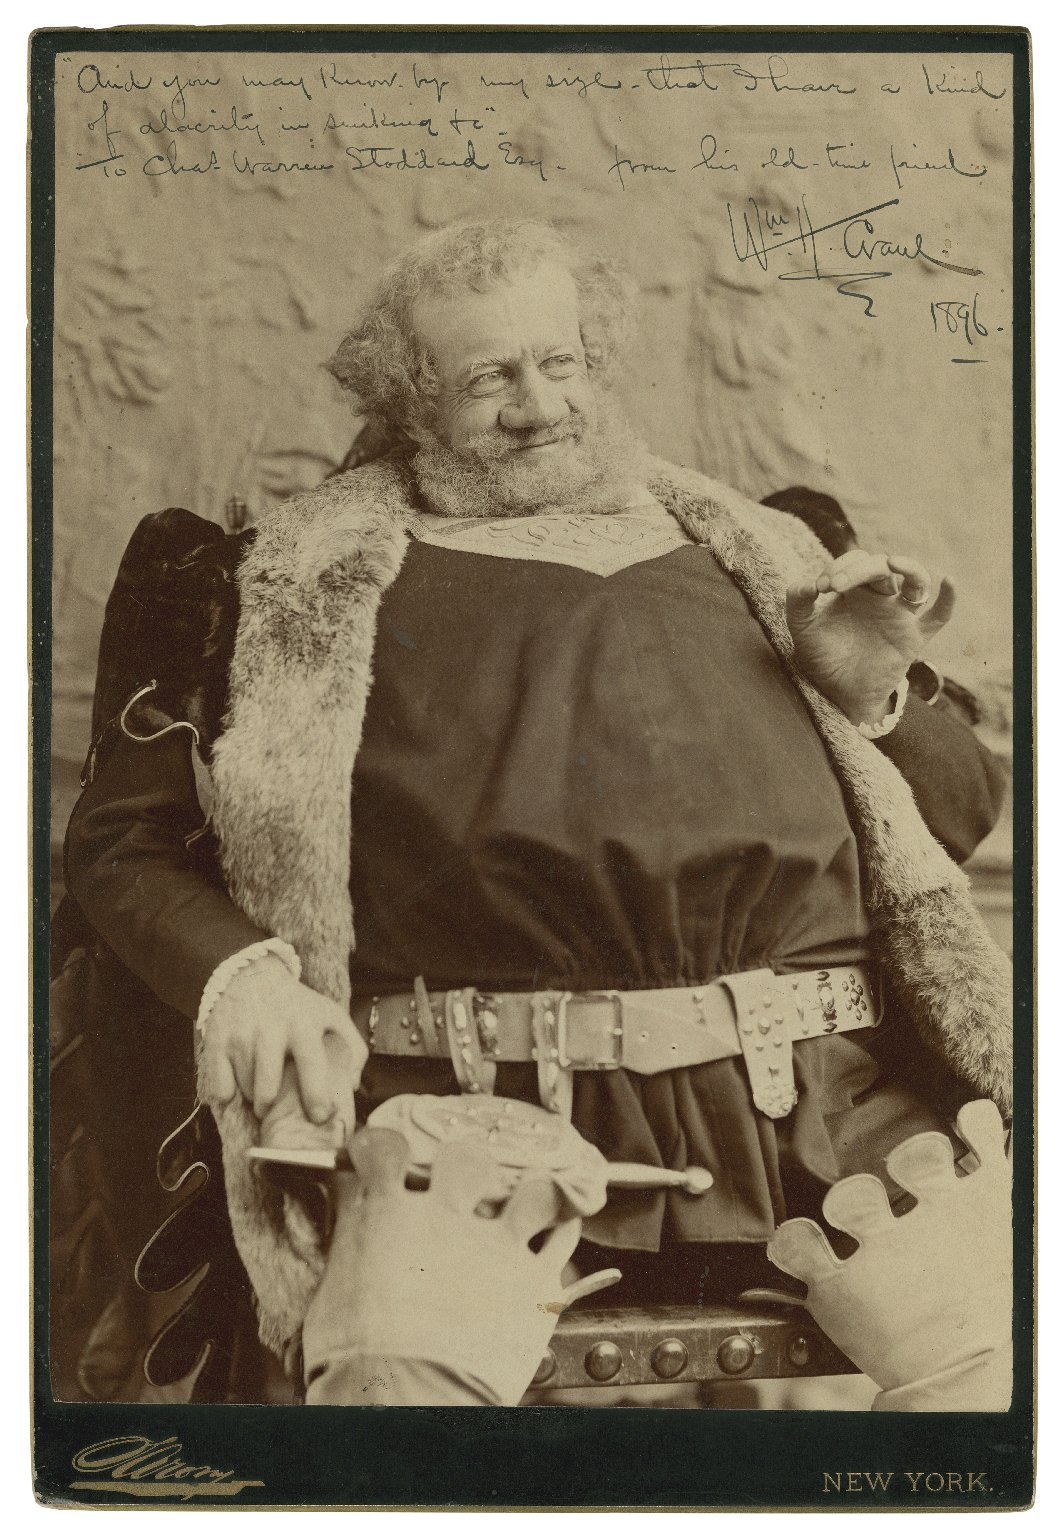 [William H. Crane as Falstaff, in Shakespeare's Merry wives of Windsor] [graphic] : And you may know by my size that I have a kind of alacrity in sinking, 1896 / Sarony.